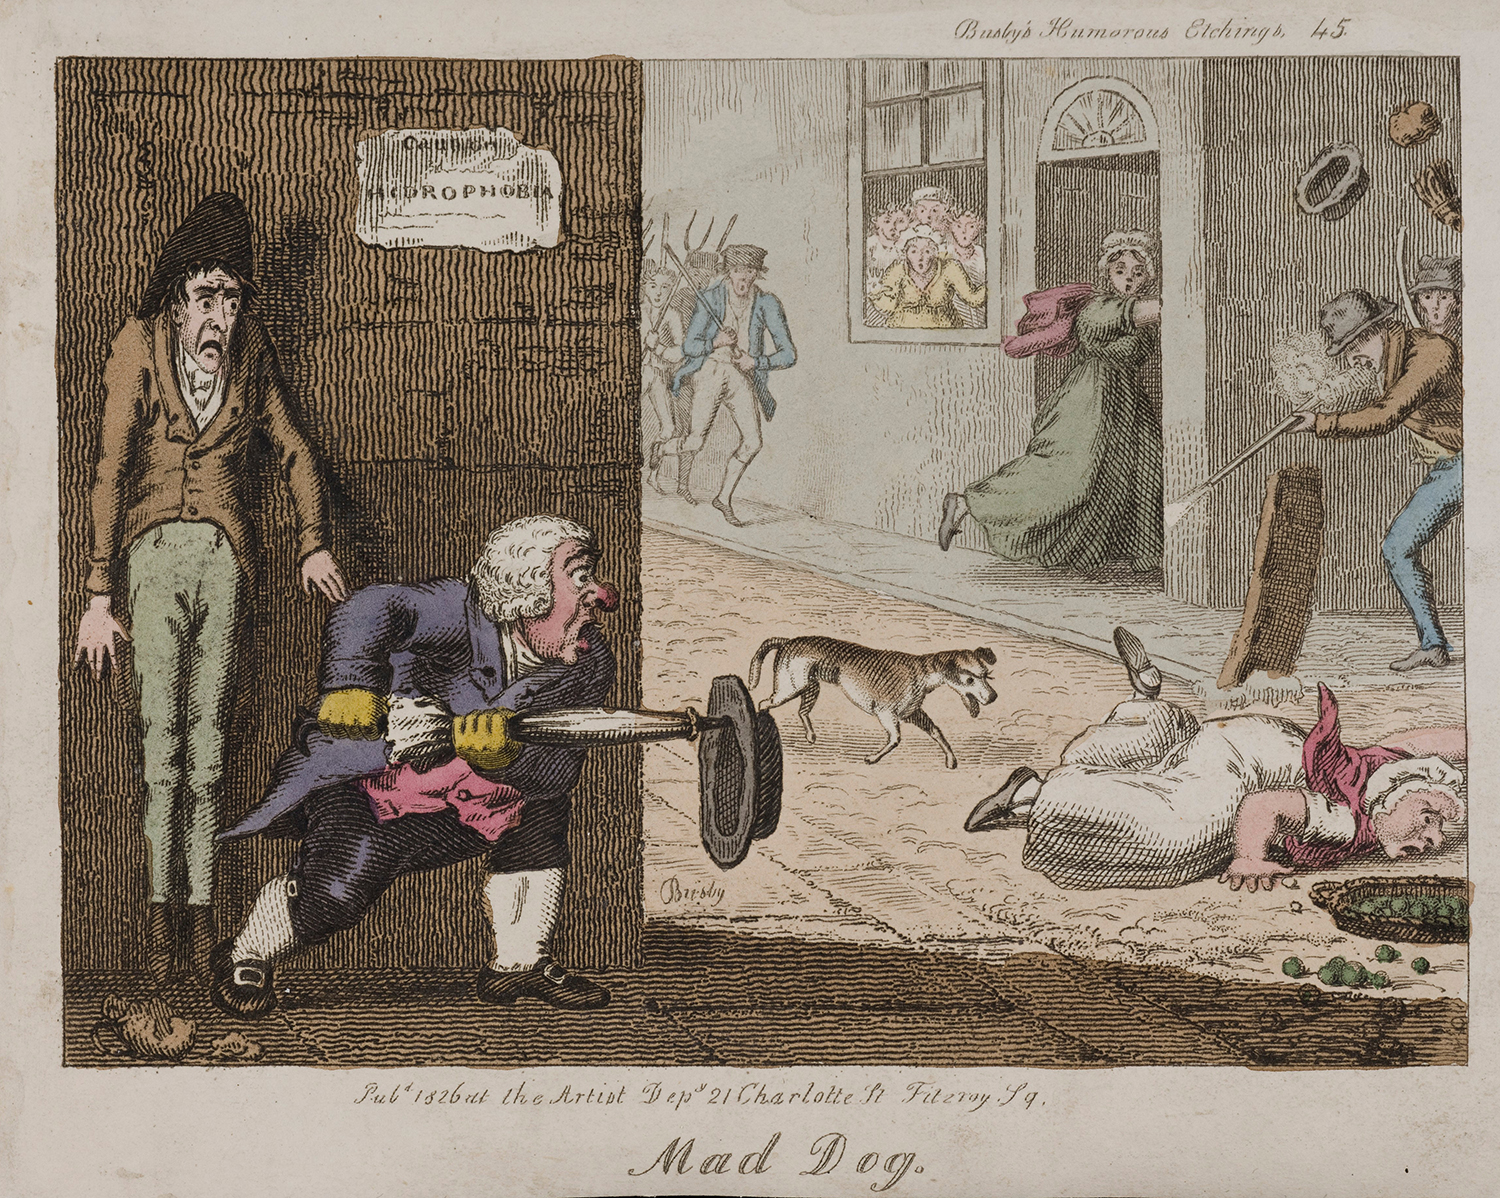 A mad dog on the run in a London street, T.L. Busby, 1826.